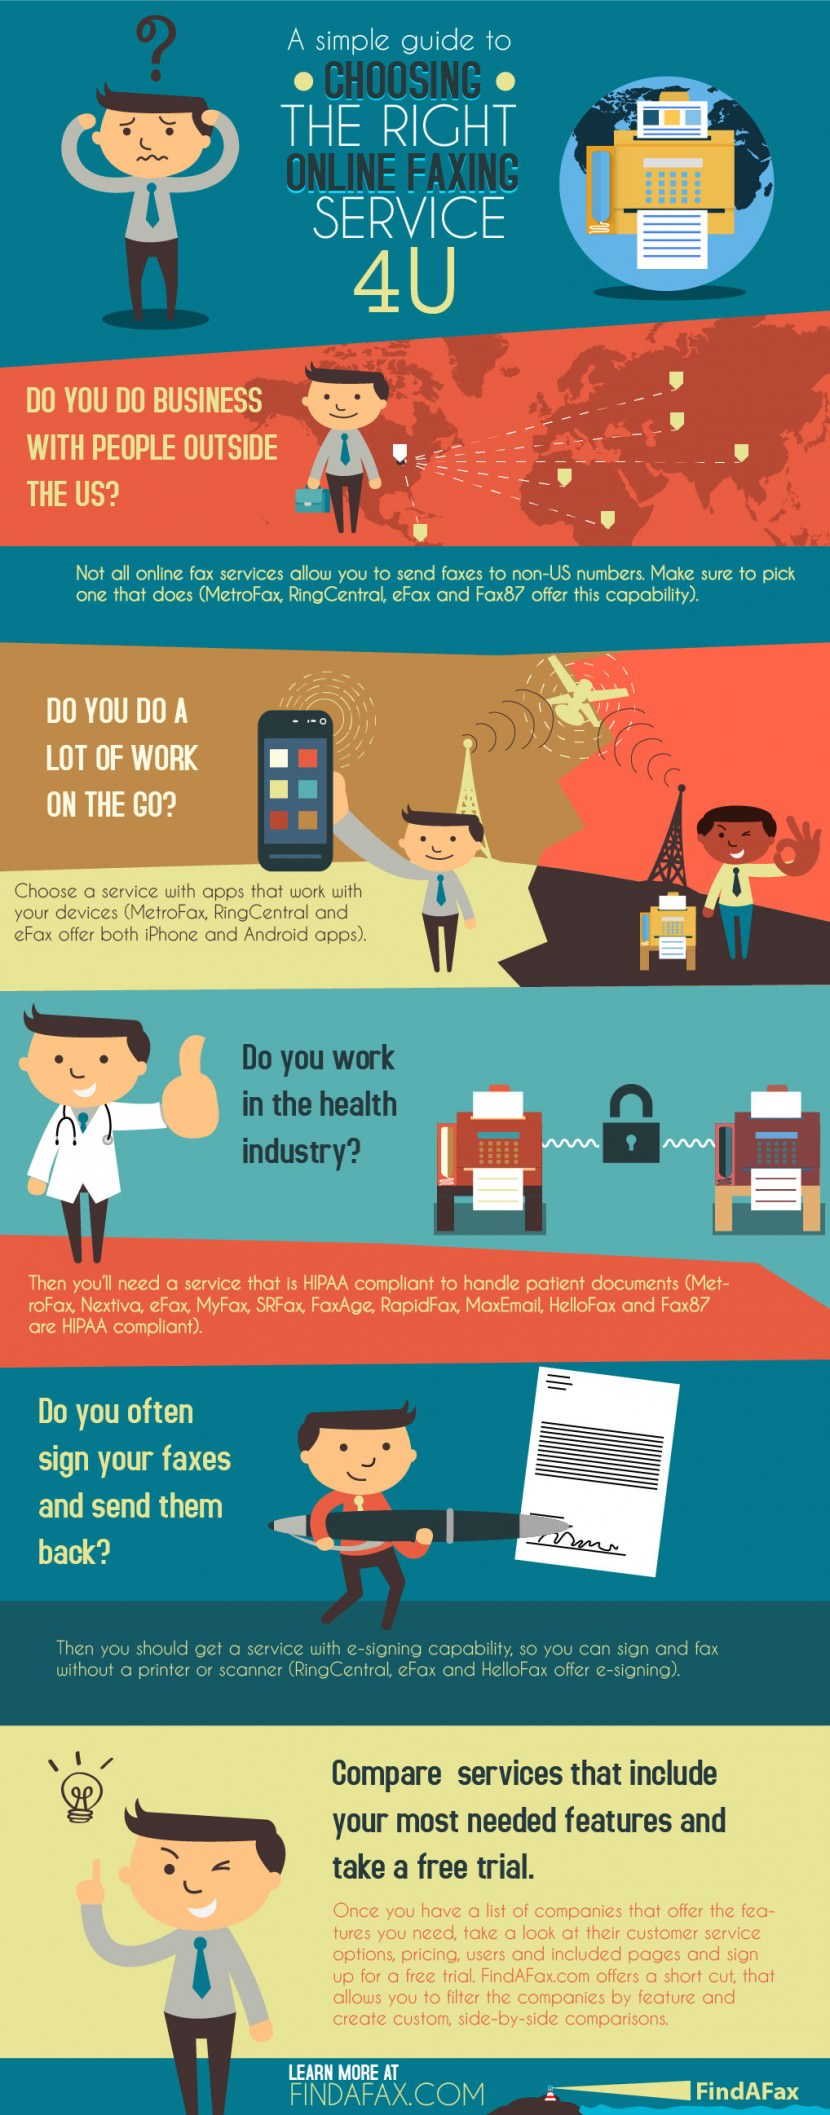 Choosing-the-Right-Online-Faxing-Service-Infographic